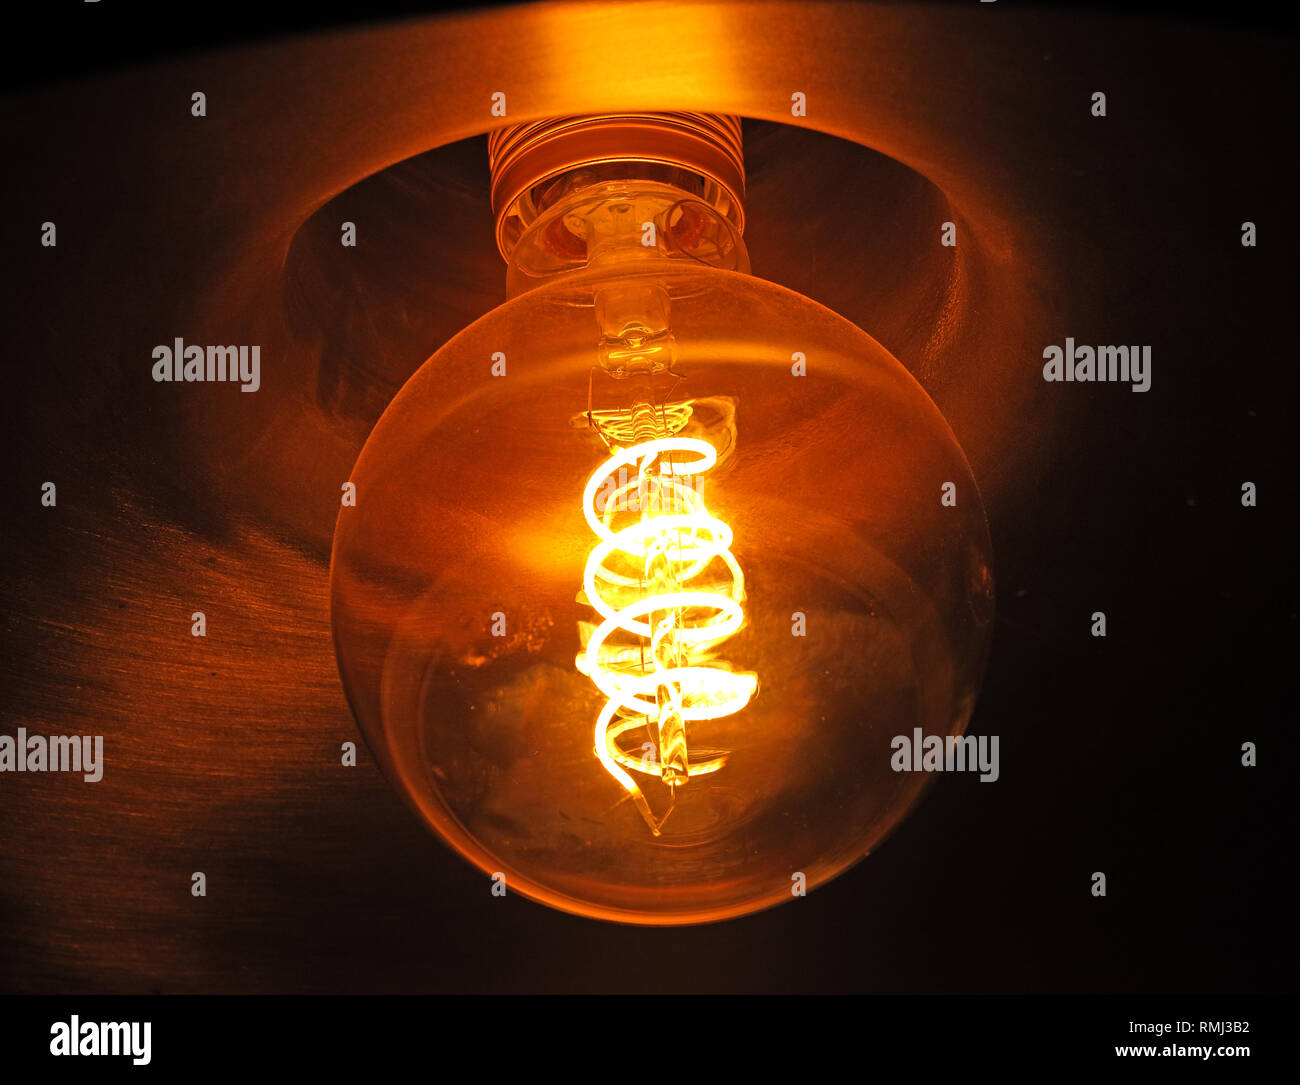 An incandescent electric light bulb, showing glowing filament, banned now in a number of countries, replaced with low energy and LED  bulbs - Stock Image